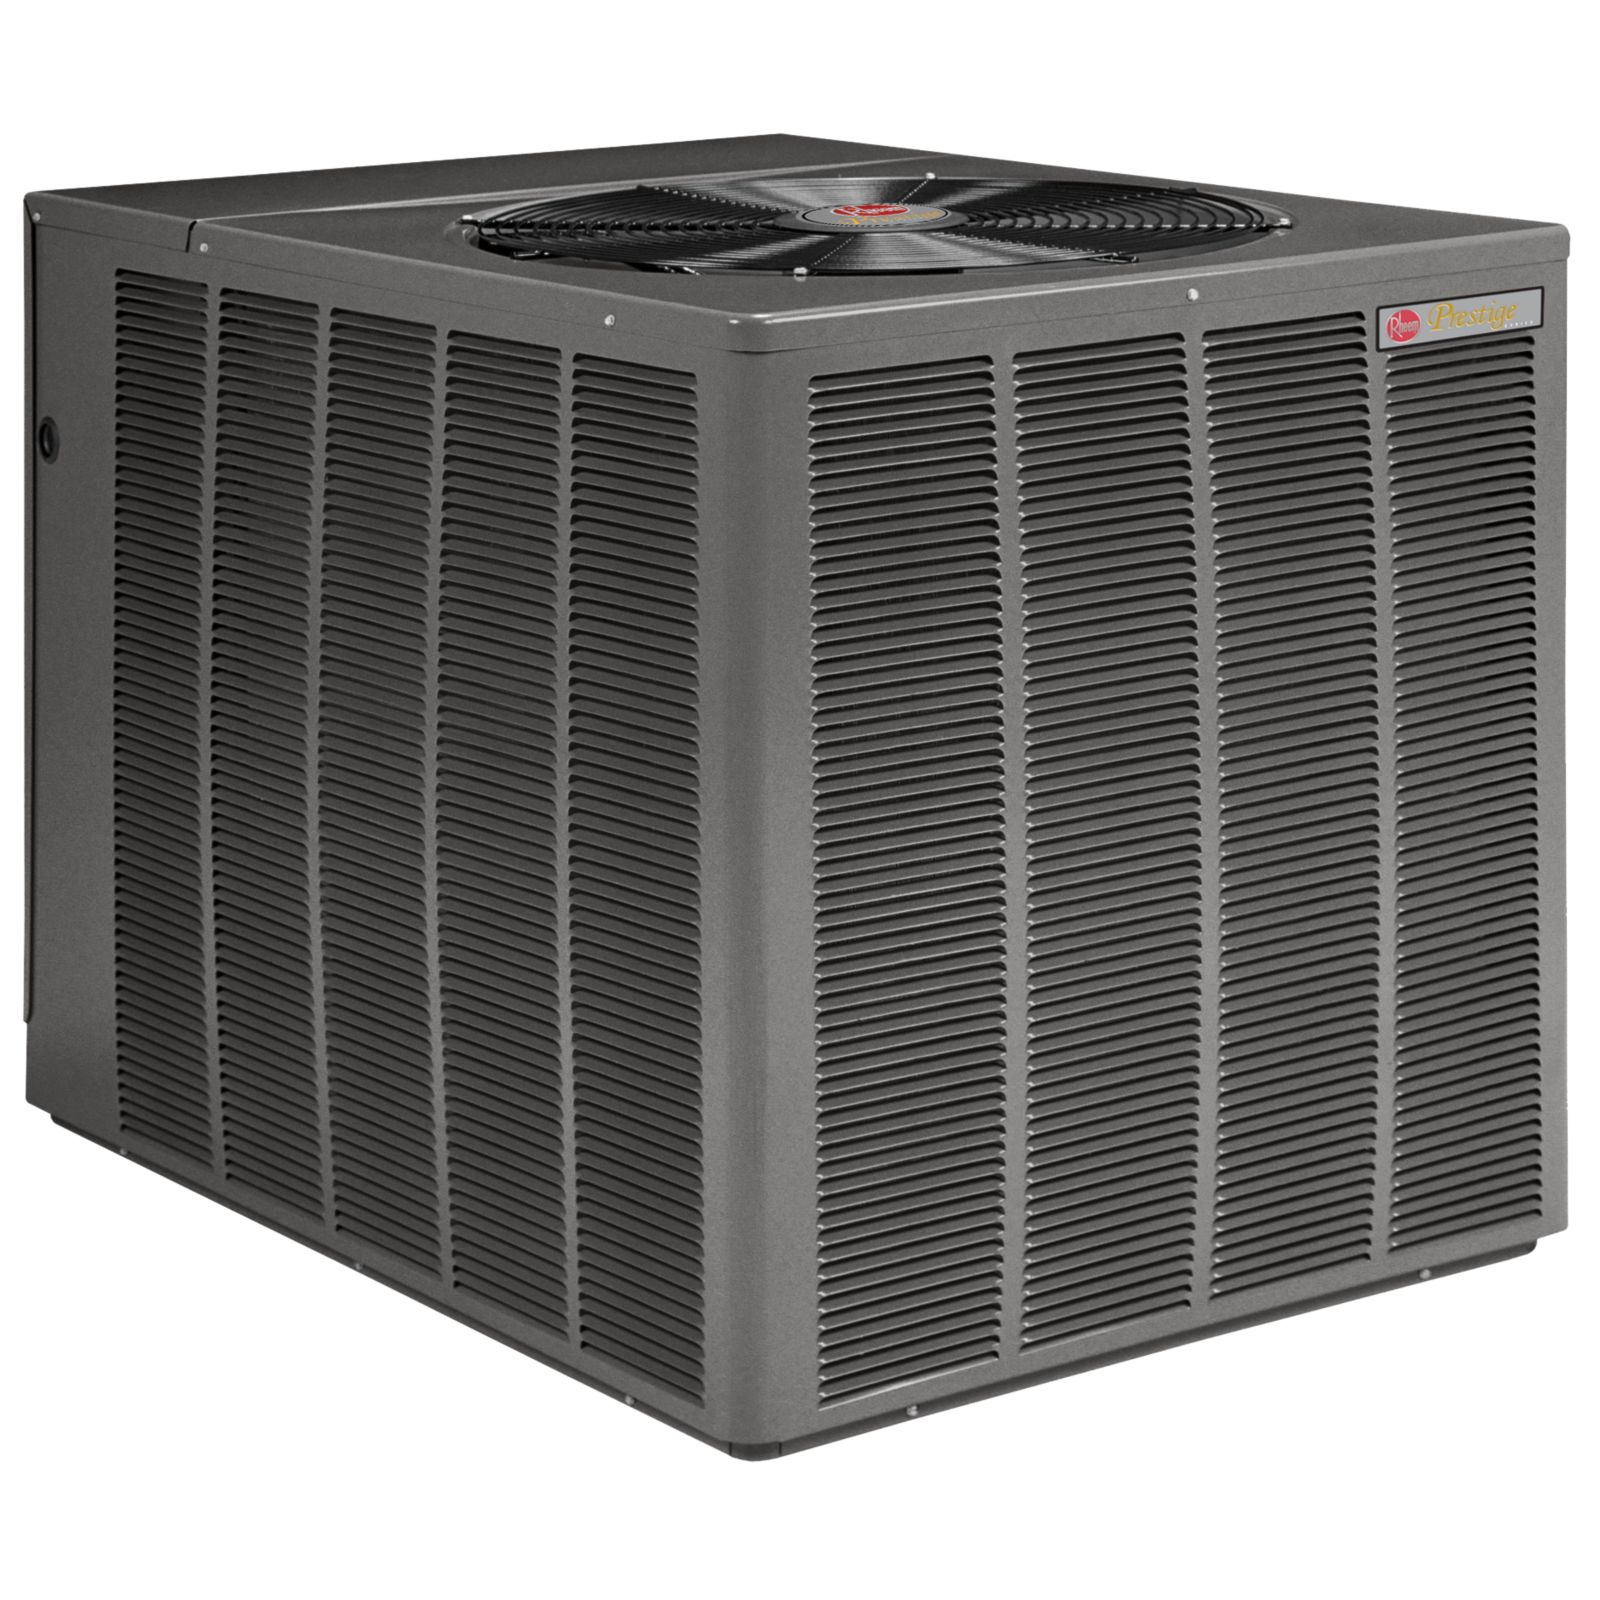 Rheem RPRL-037JEC - Prestige Series 3 Ton, 16 SEER, R410A Heat Pump With Comfort Control 2 - 208-230 V, 1 Ph, 60 Hz